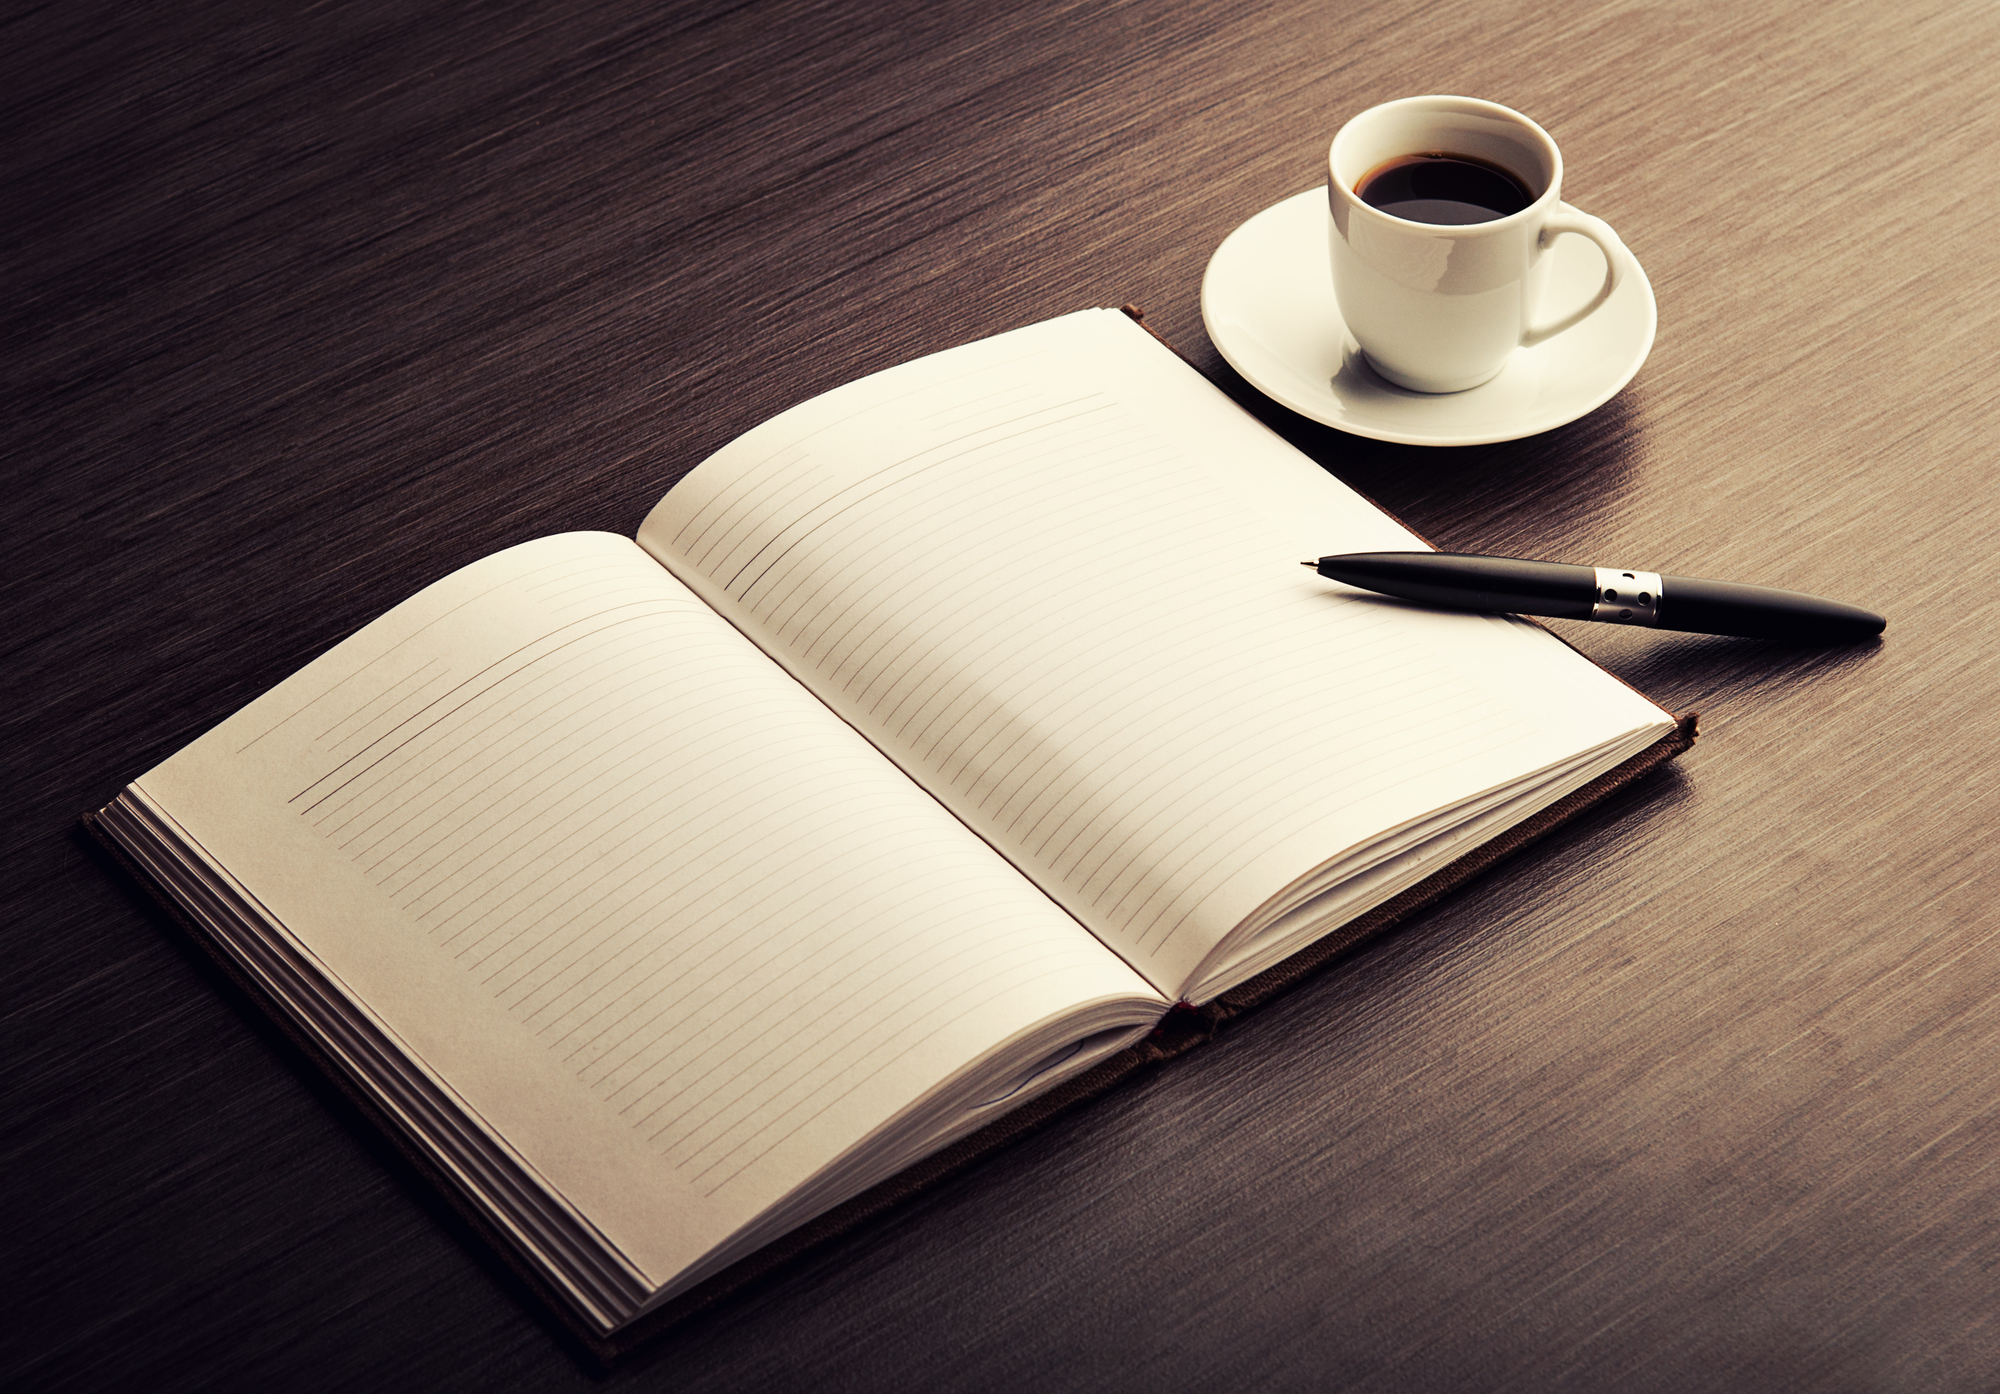 How I Wrote a Leadership Book in 4 Months: 10 Writing Tips - Charles Stone